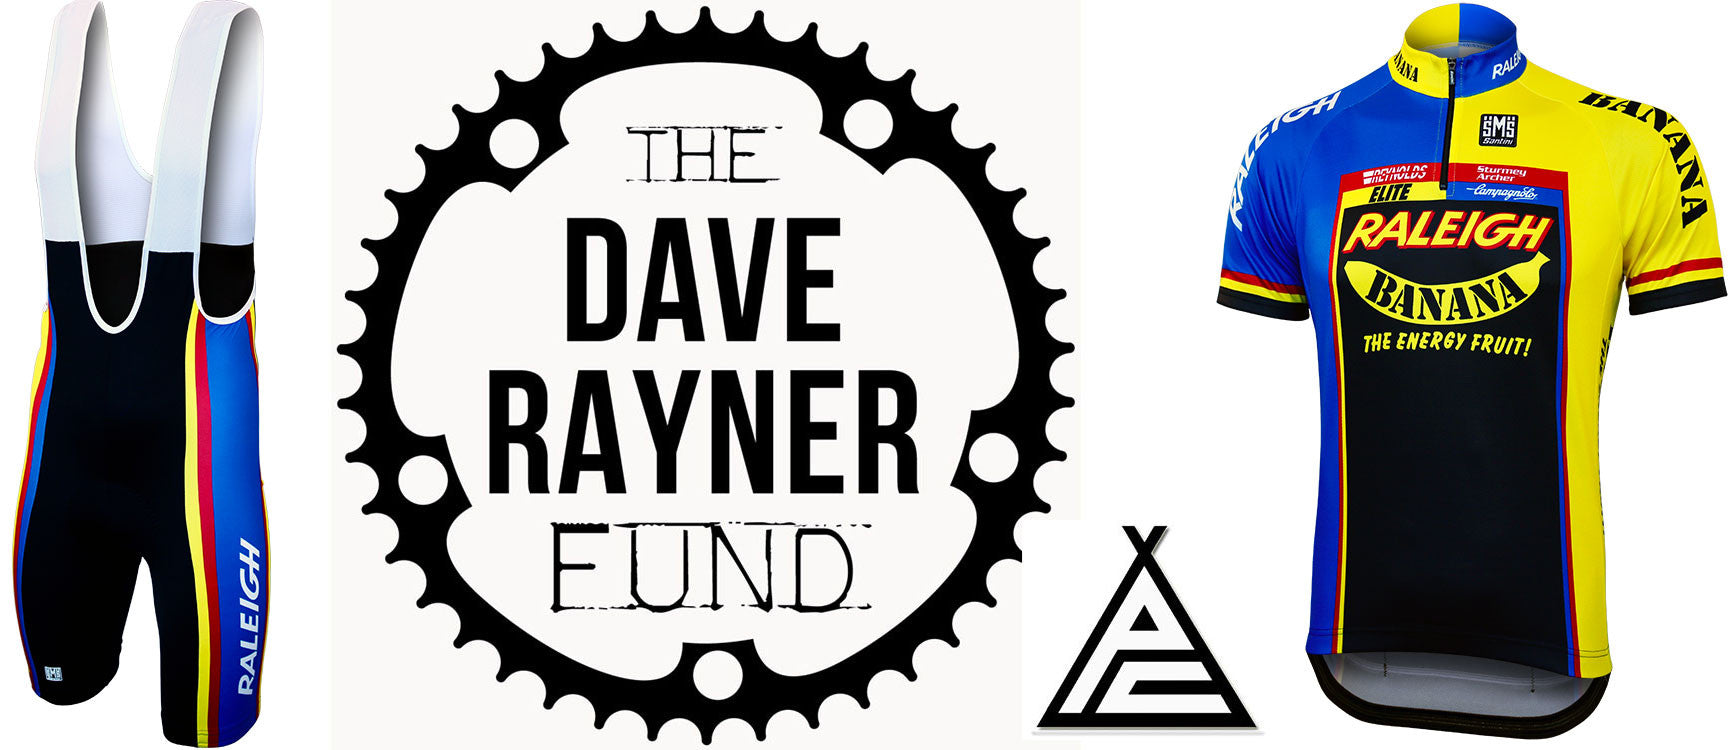 £18,000 donated to the Dave Rayner Fund & Raleigh Banana Retro Kit Announced!